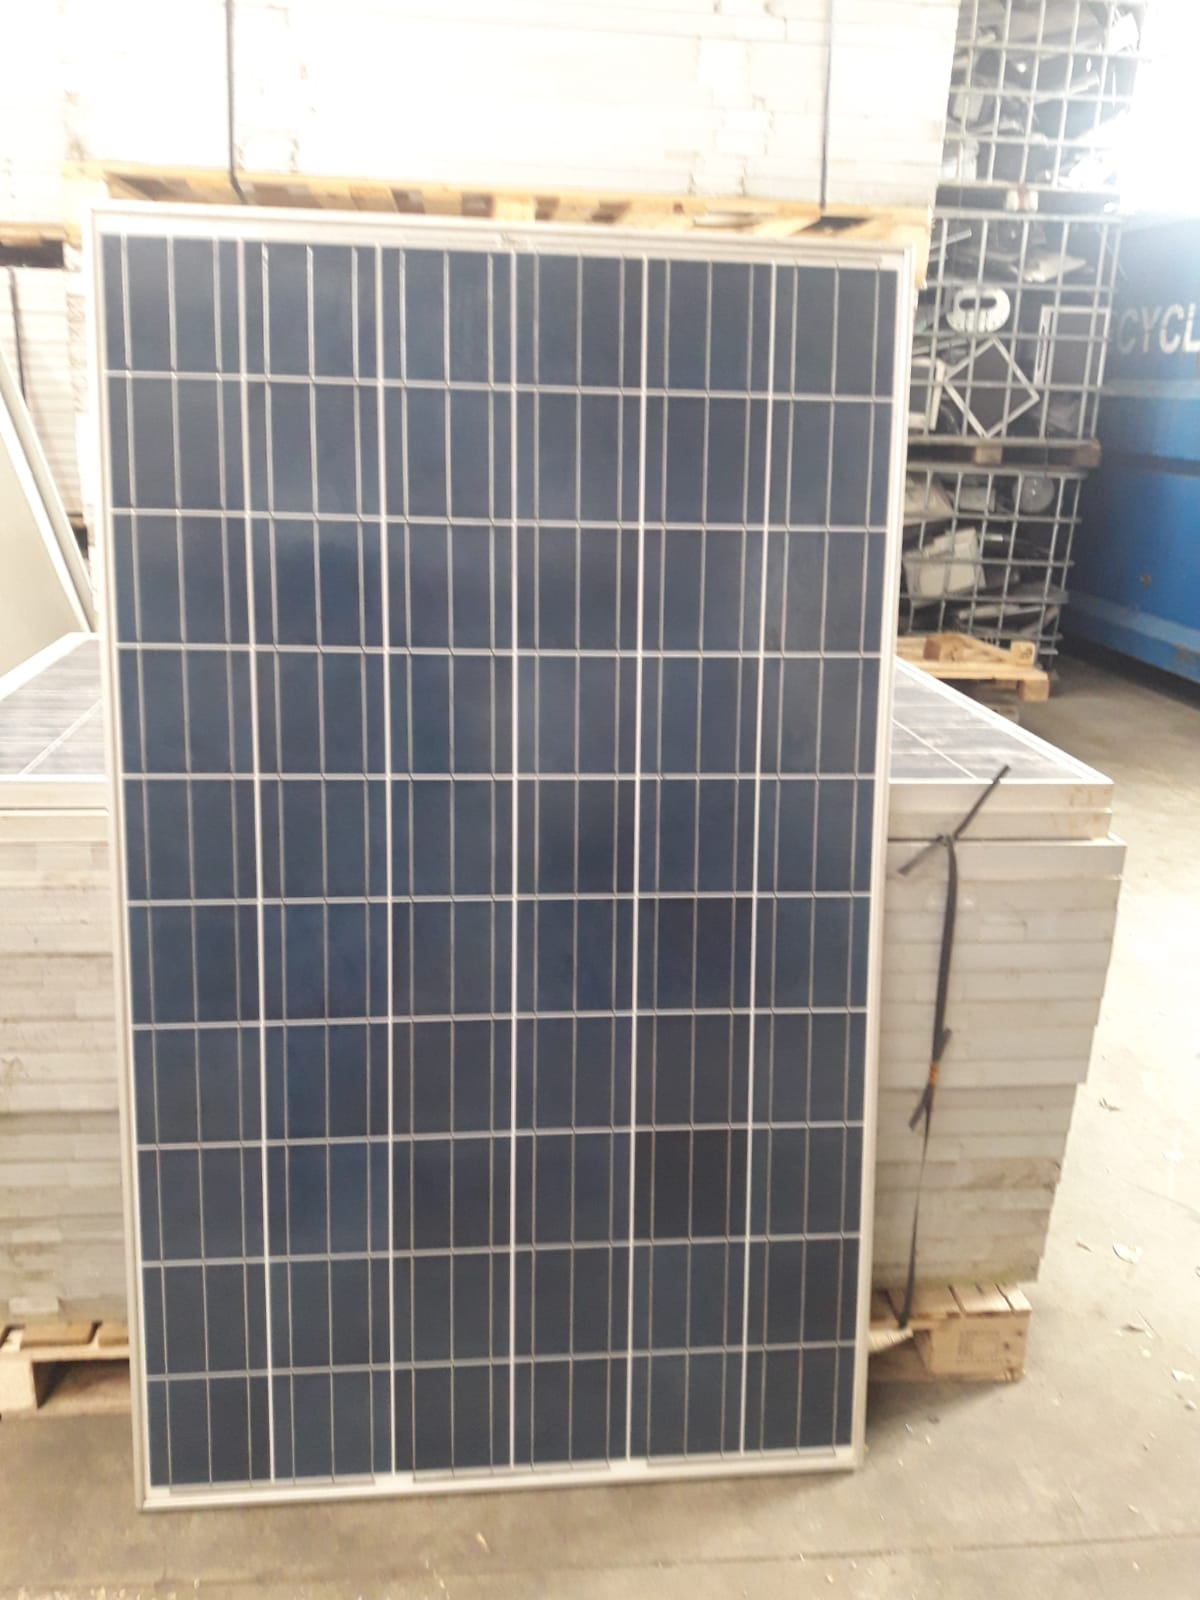 34975 - COMPLETE PHOTOVOLTAIK SYSTEM Europe